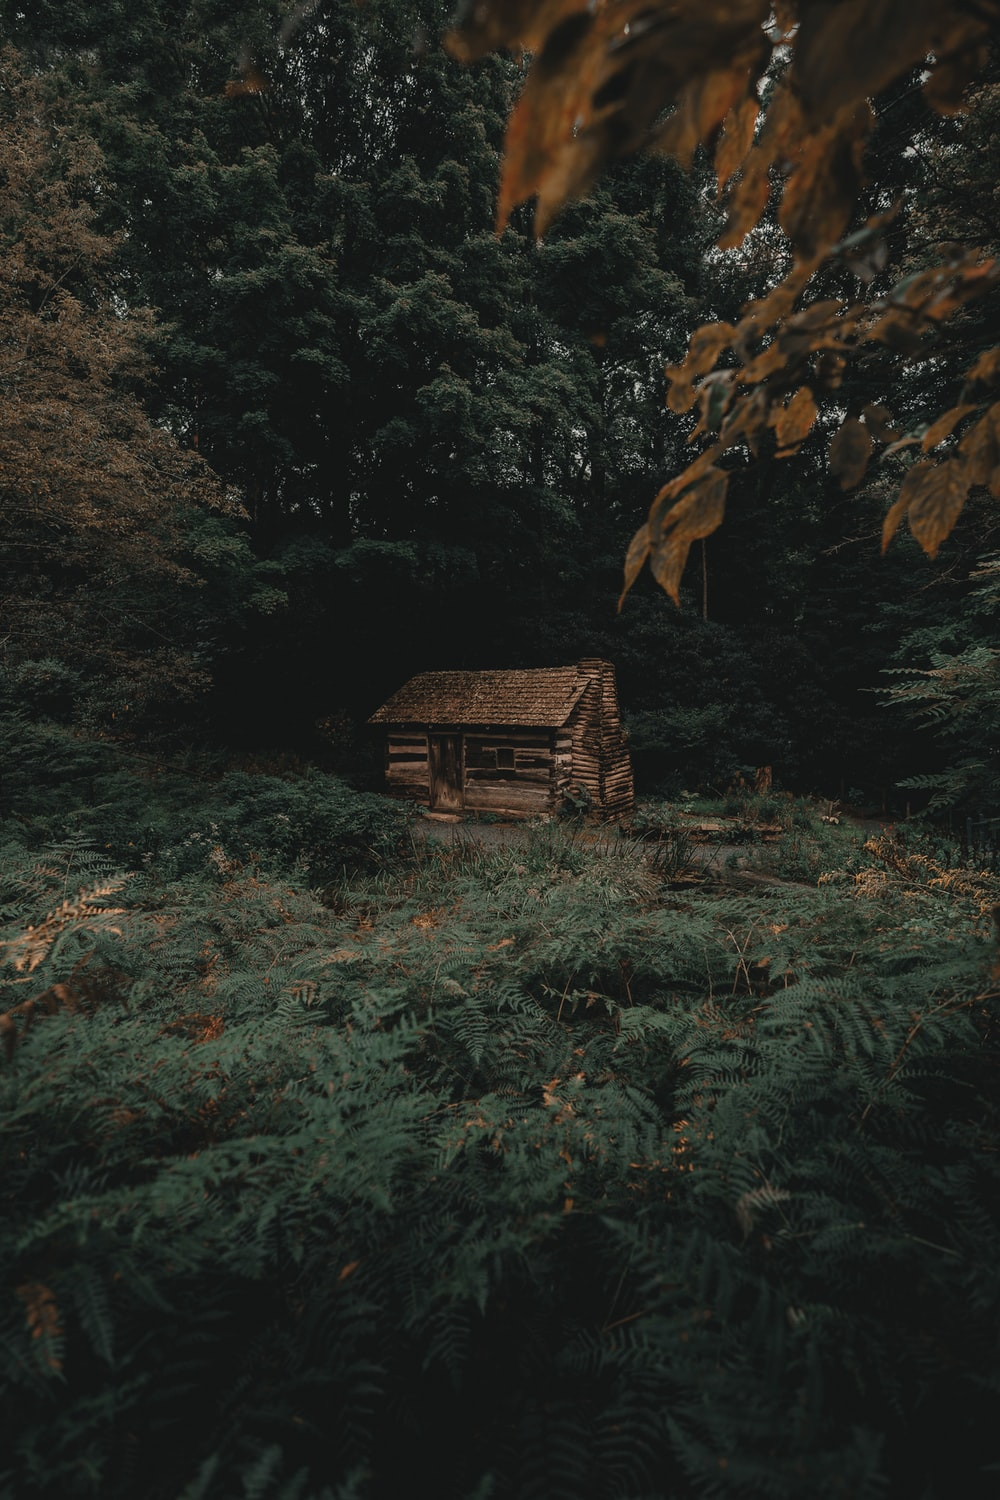 Cabin In The Woods Pictures Download Free Images On Unsplash